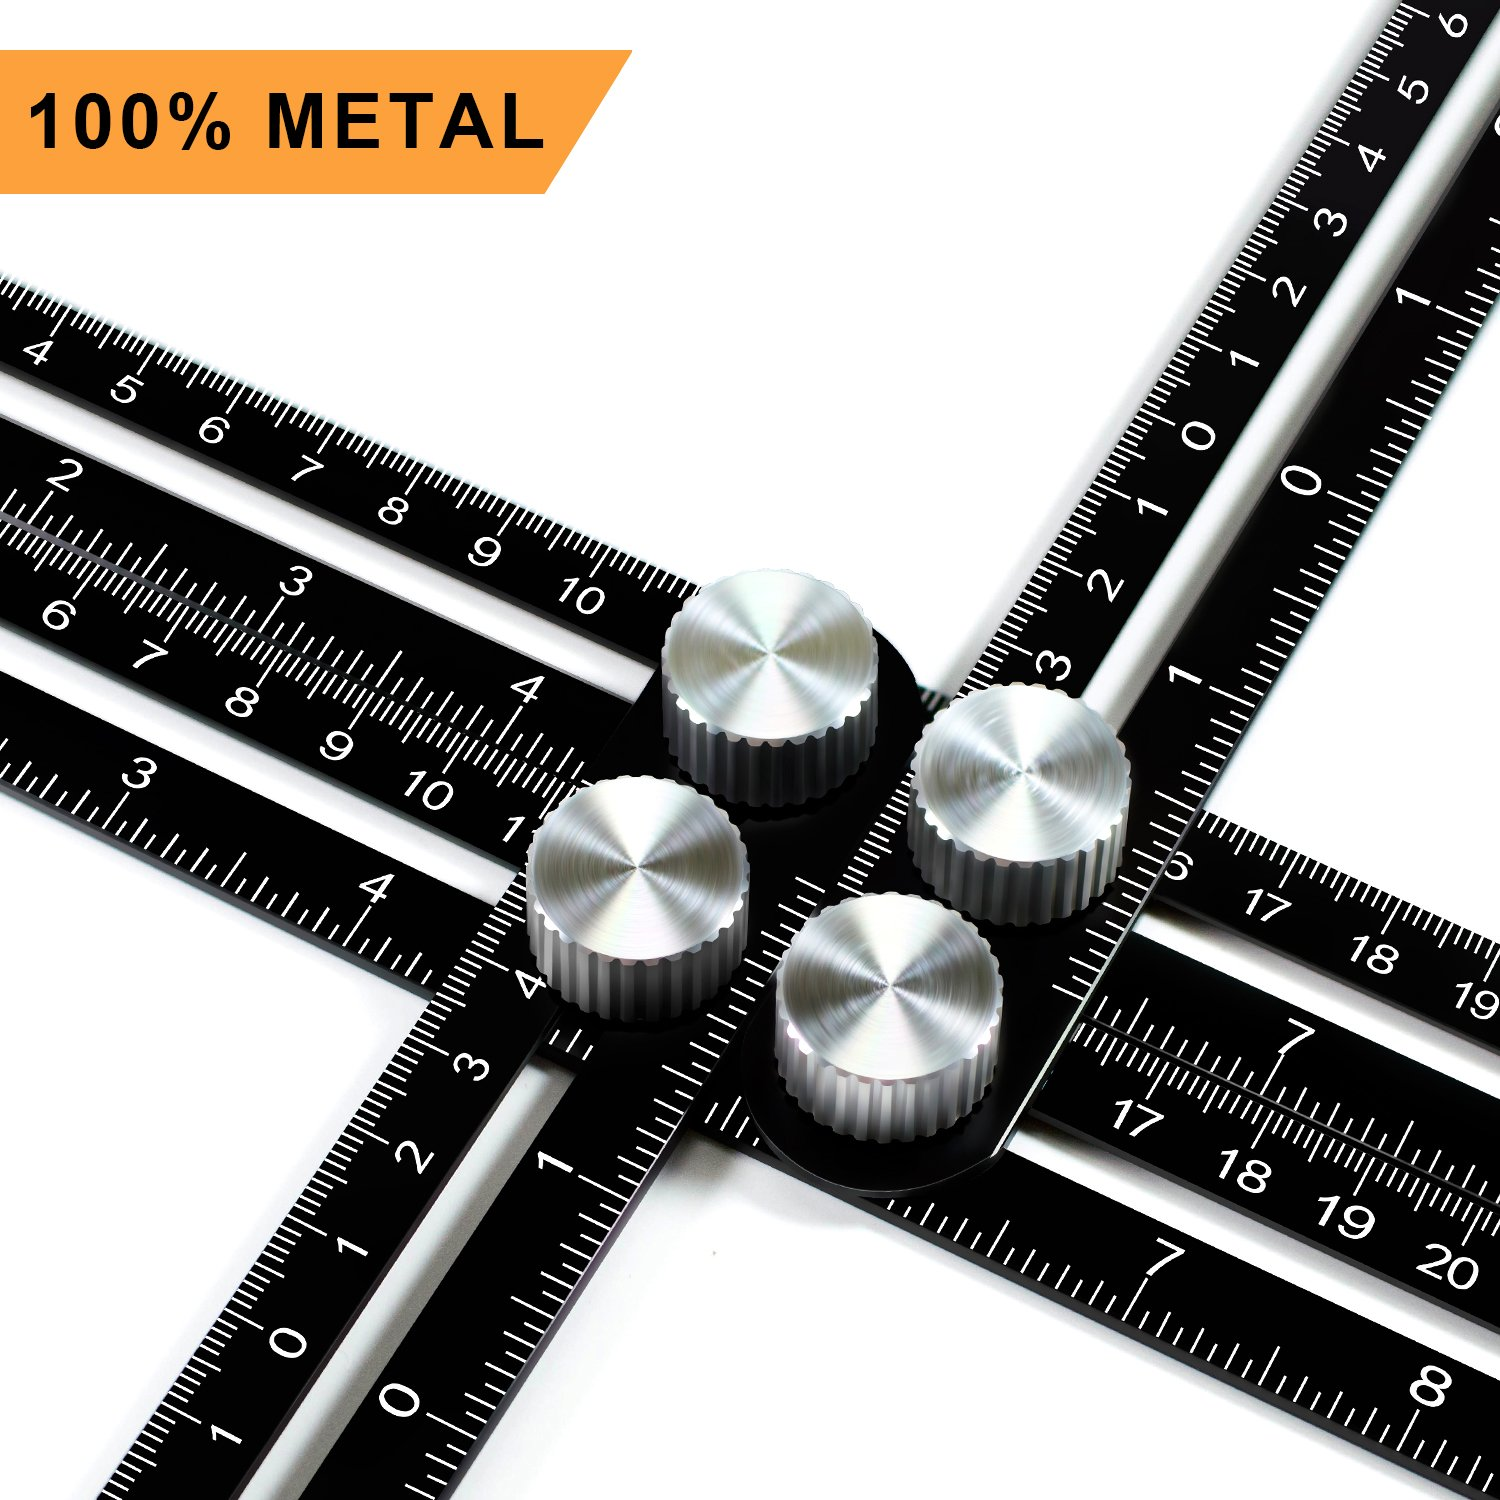 Multi Angle Measuring Ruler, Ankace Premium Aluminum Alloy Ultimate 836 Angleizer Template Tool/Layout Tool Measurement for Handymen, Builders, Craftsmen, DIY-ers, Black